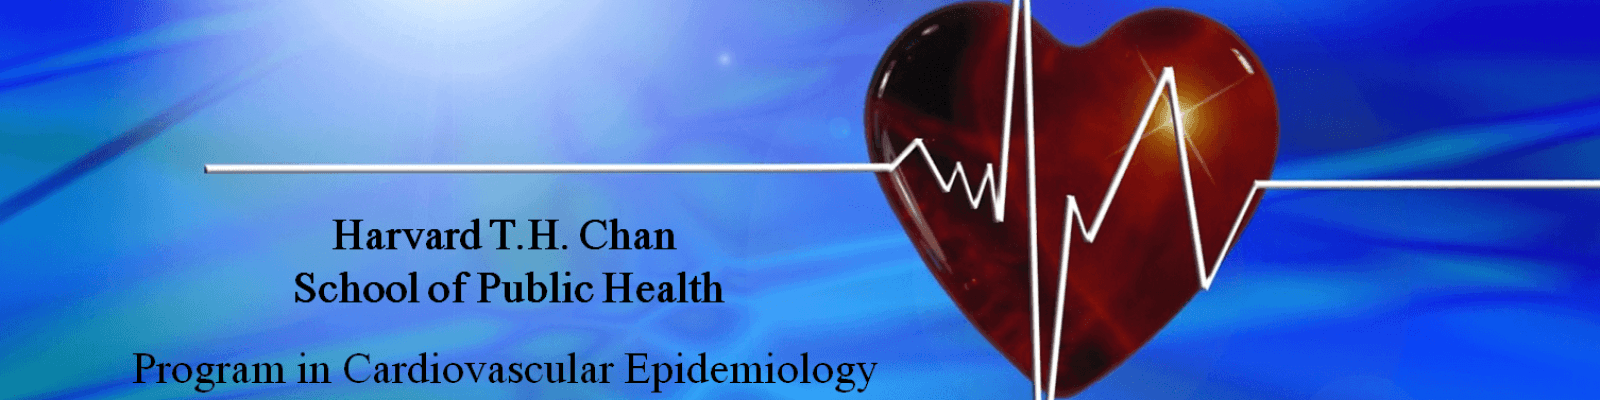 Program in Cardiovascular Epidemiology | Harvard T.H. Chan School of ...